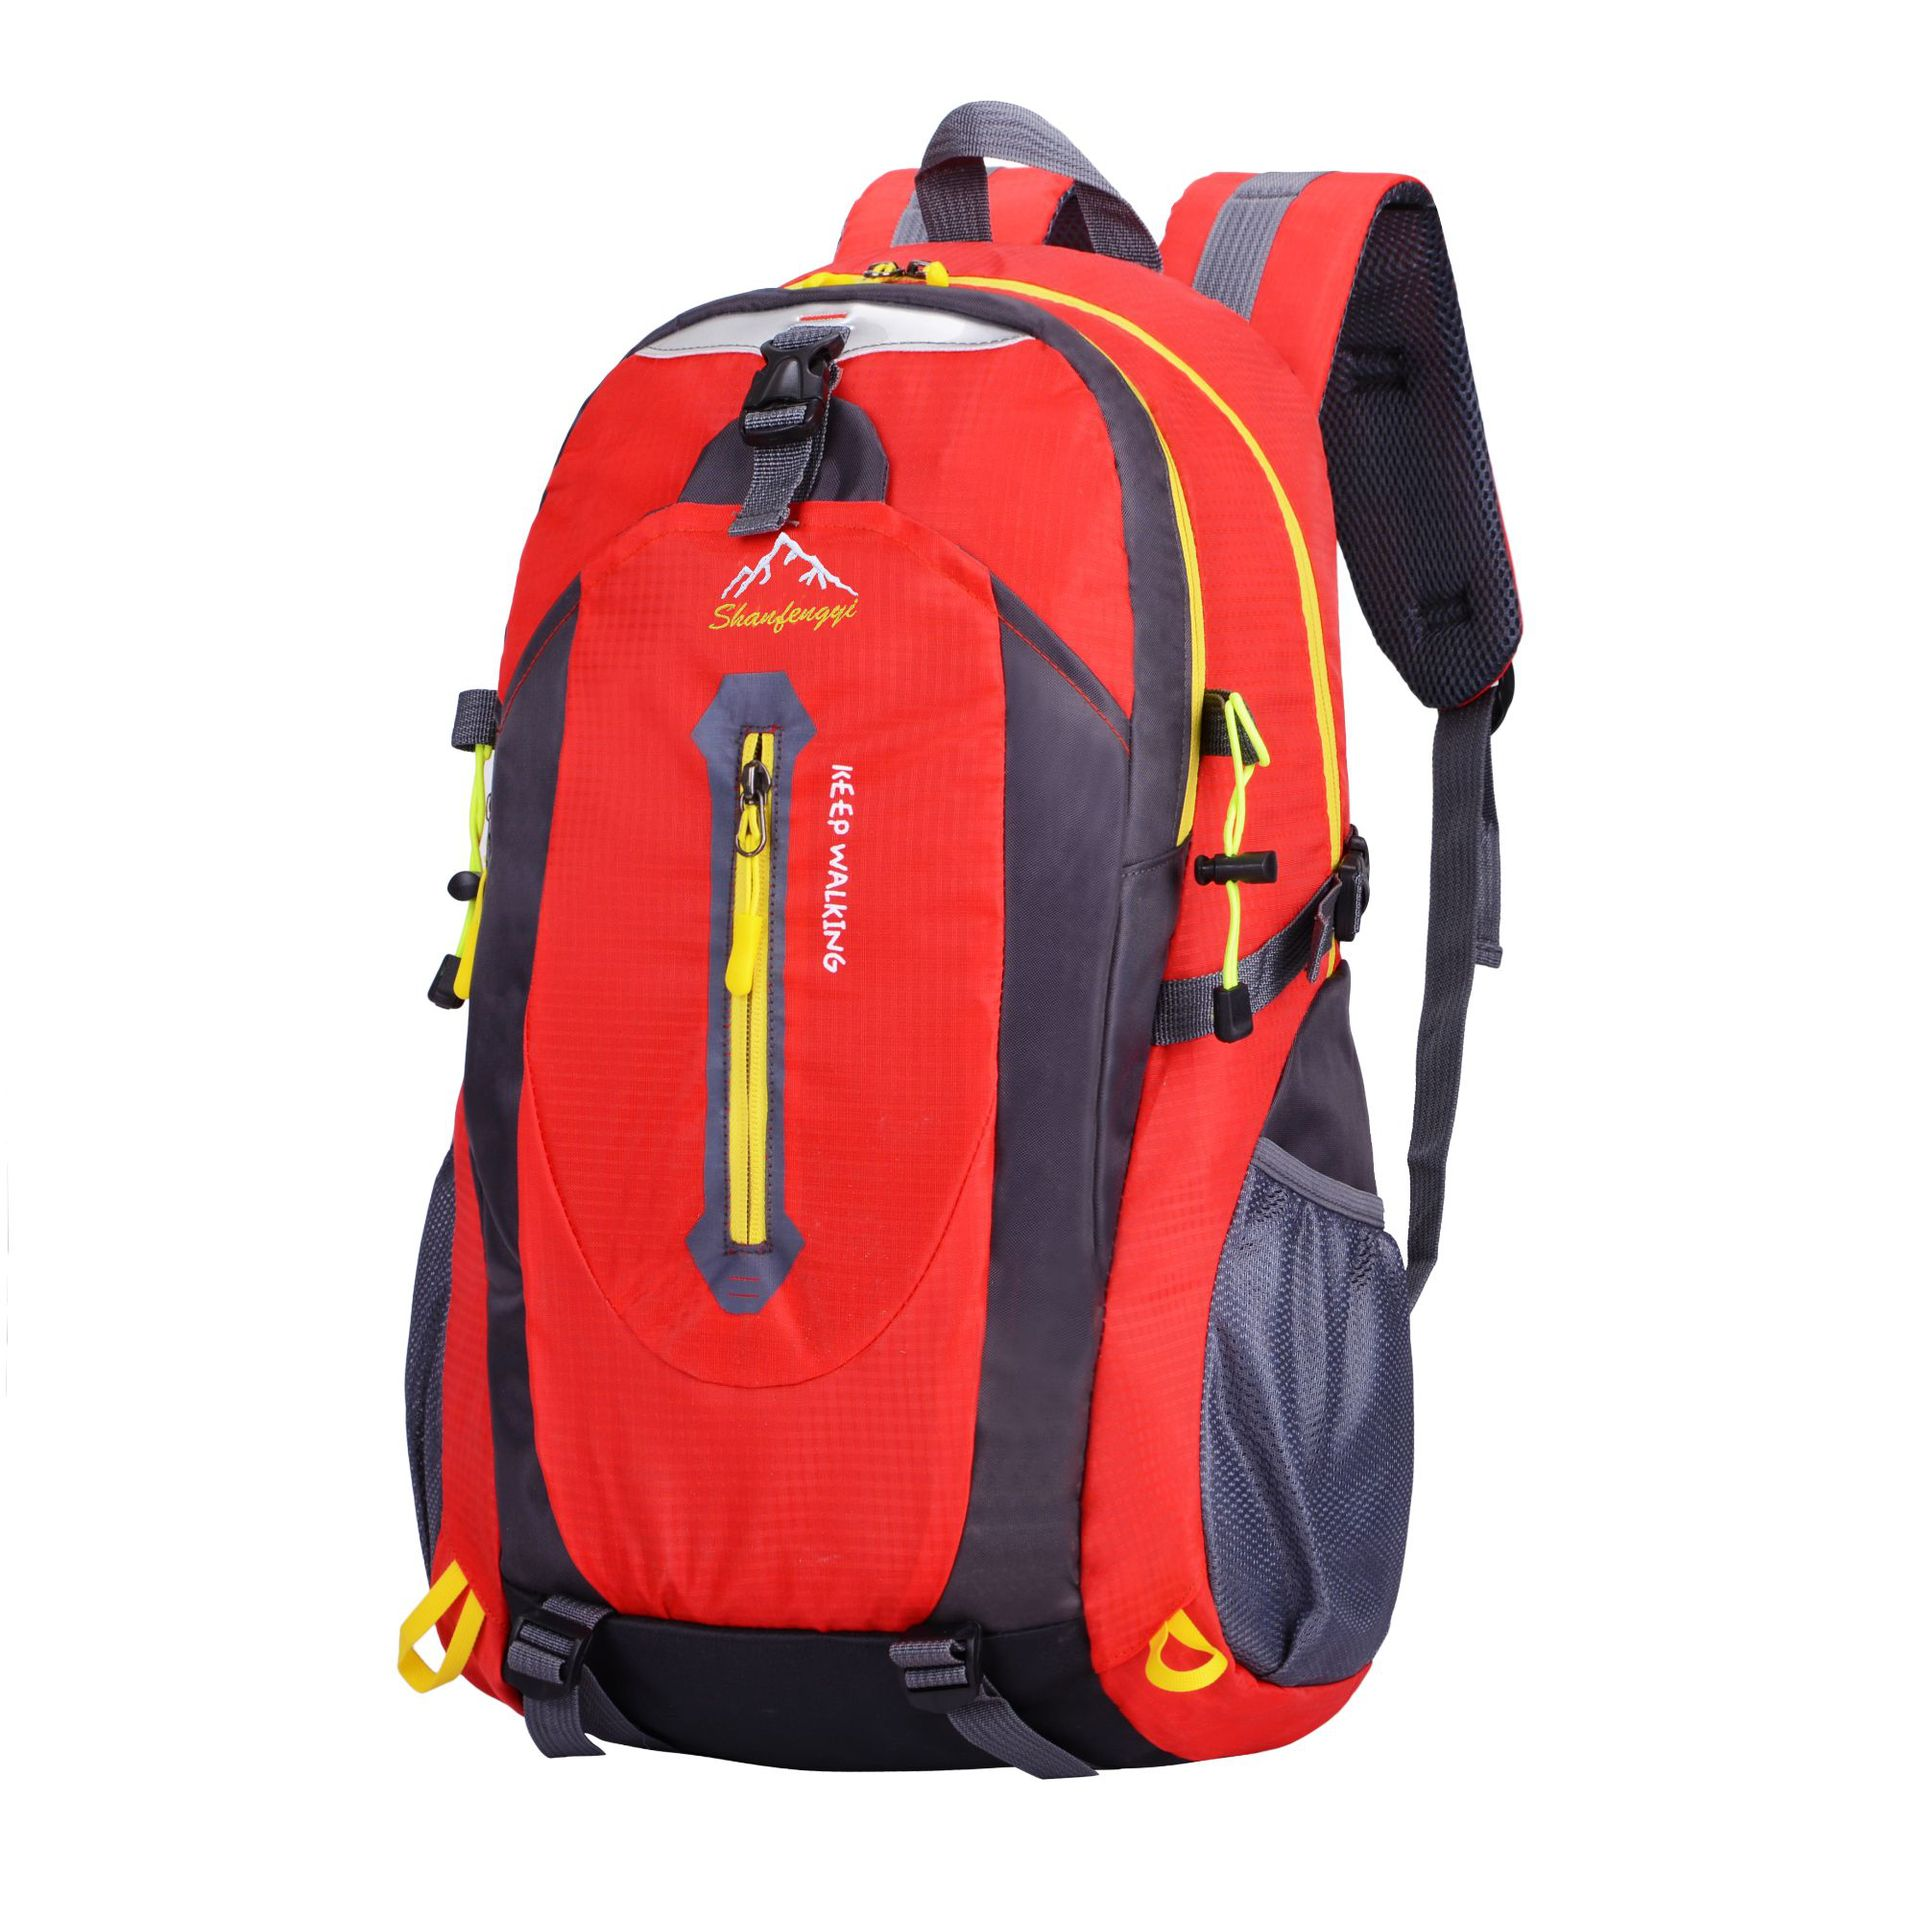 Cross Border For Outdoor Shoulder Sports Bag Travel Agency Customizable Waterproof Mountain Climbing Hiking Backpack